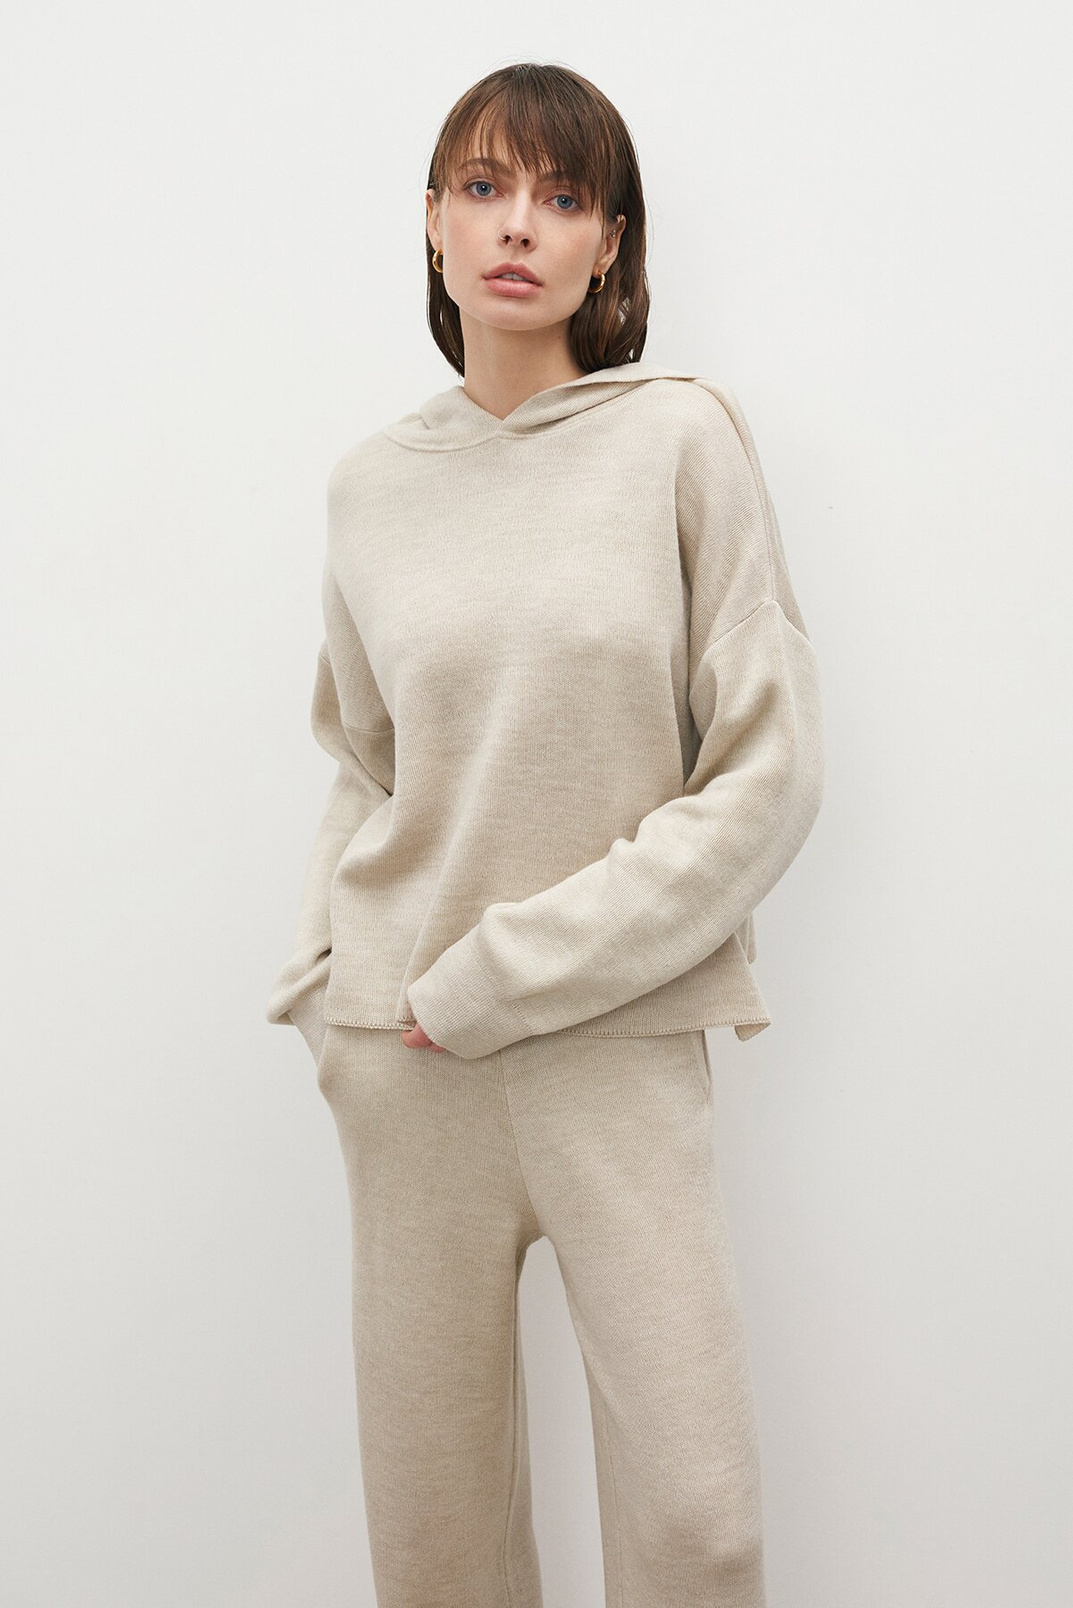 Knitted hoodie, Milky, XS-S